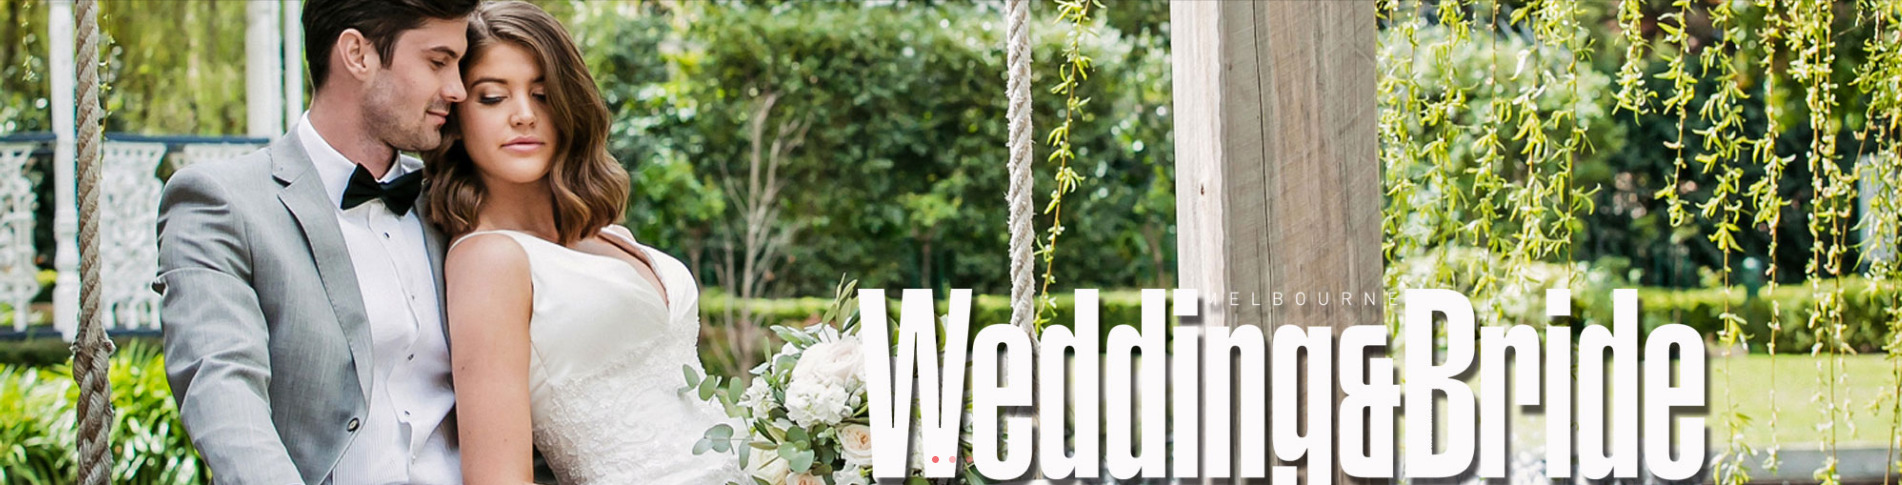 Wedding and Bride Magazine